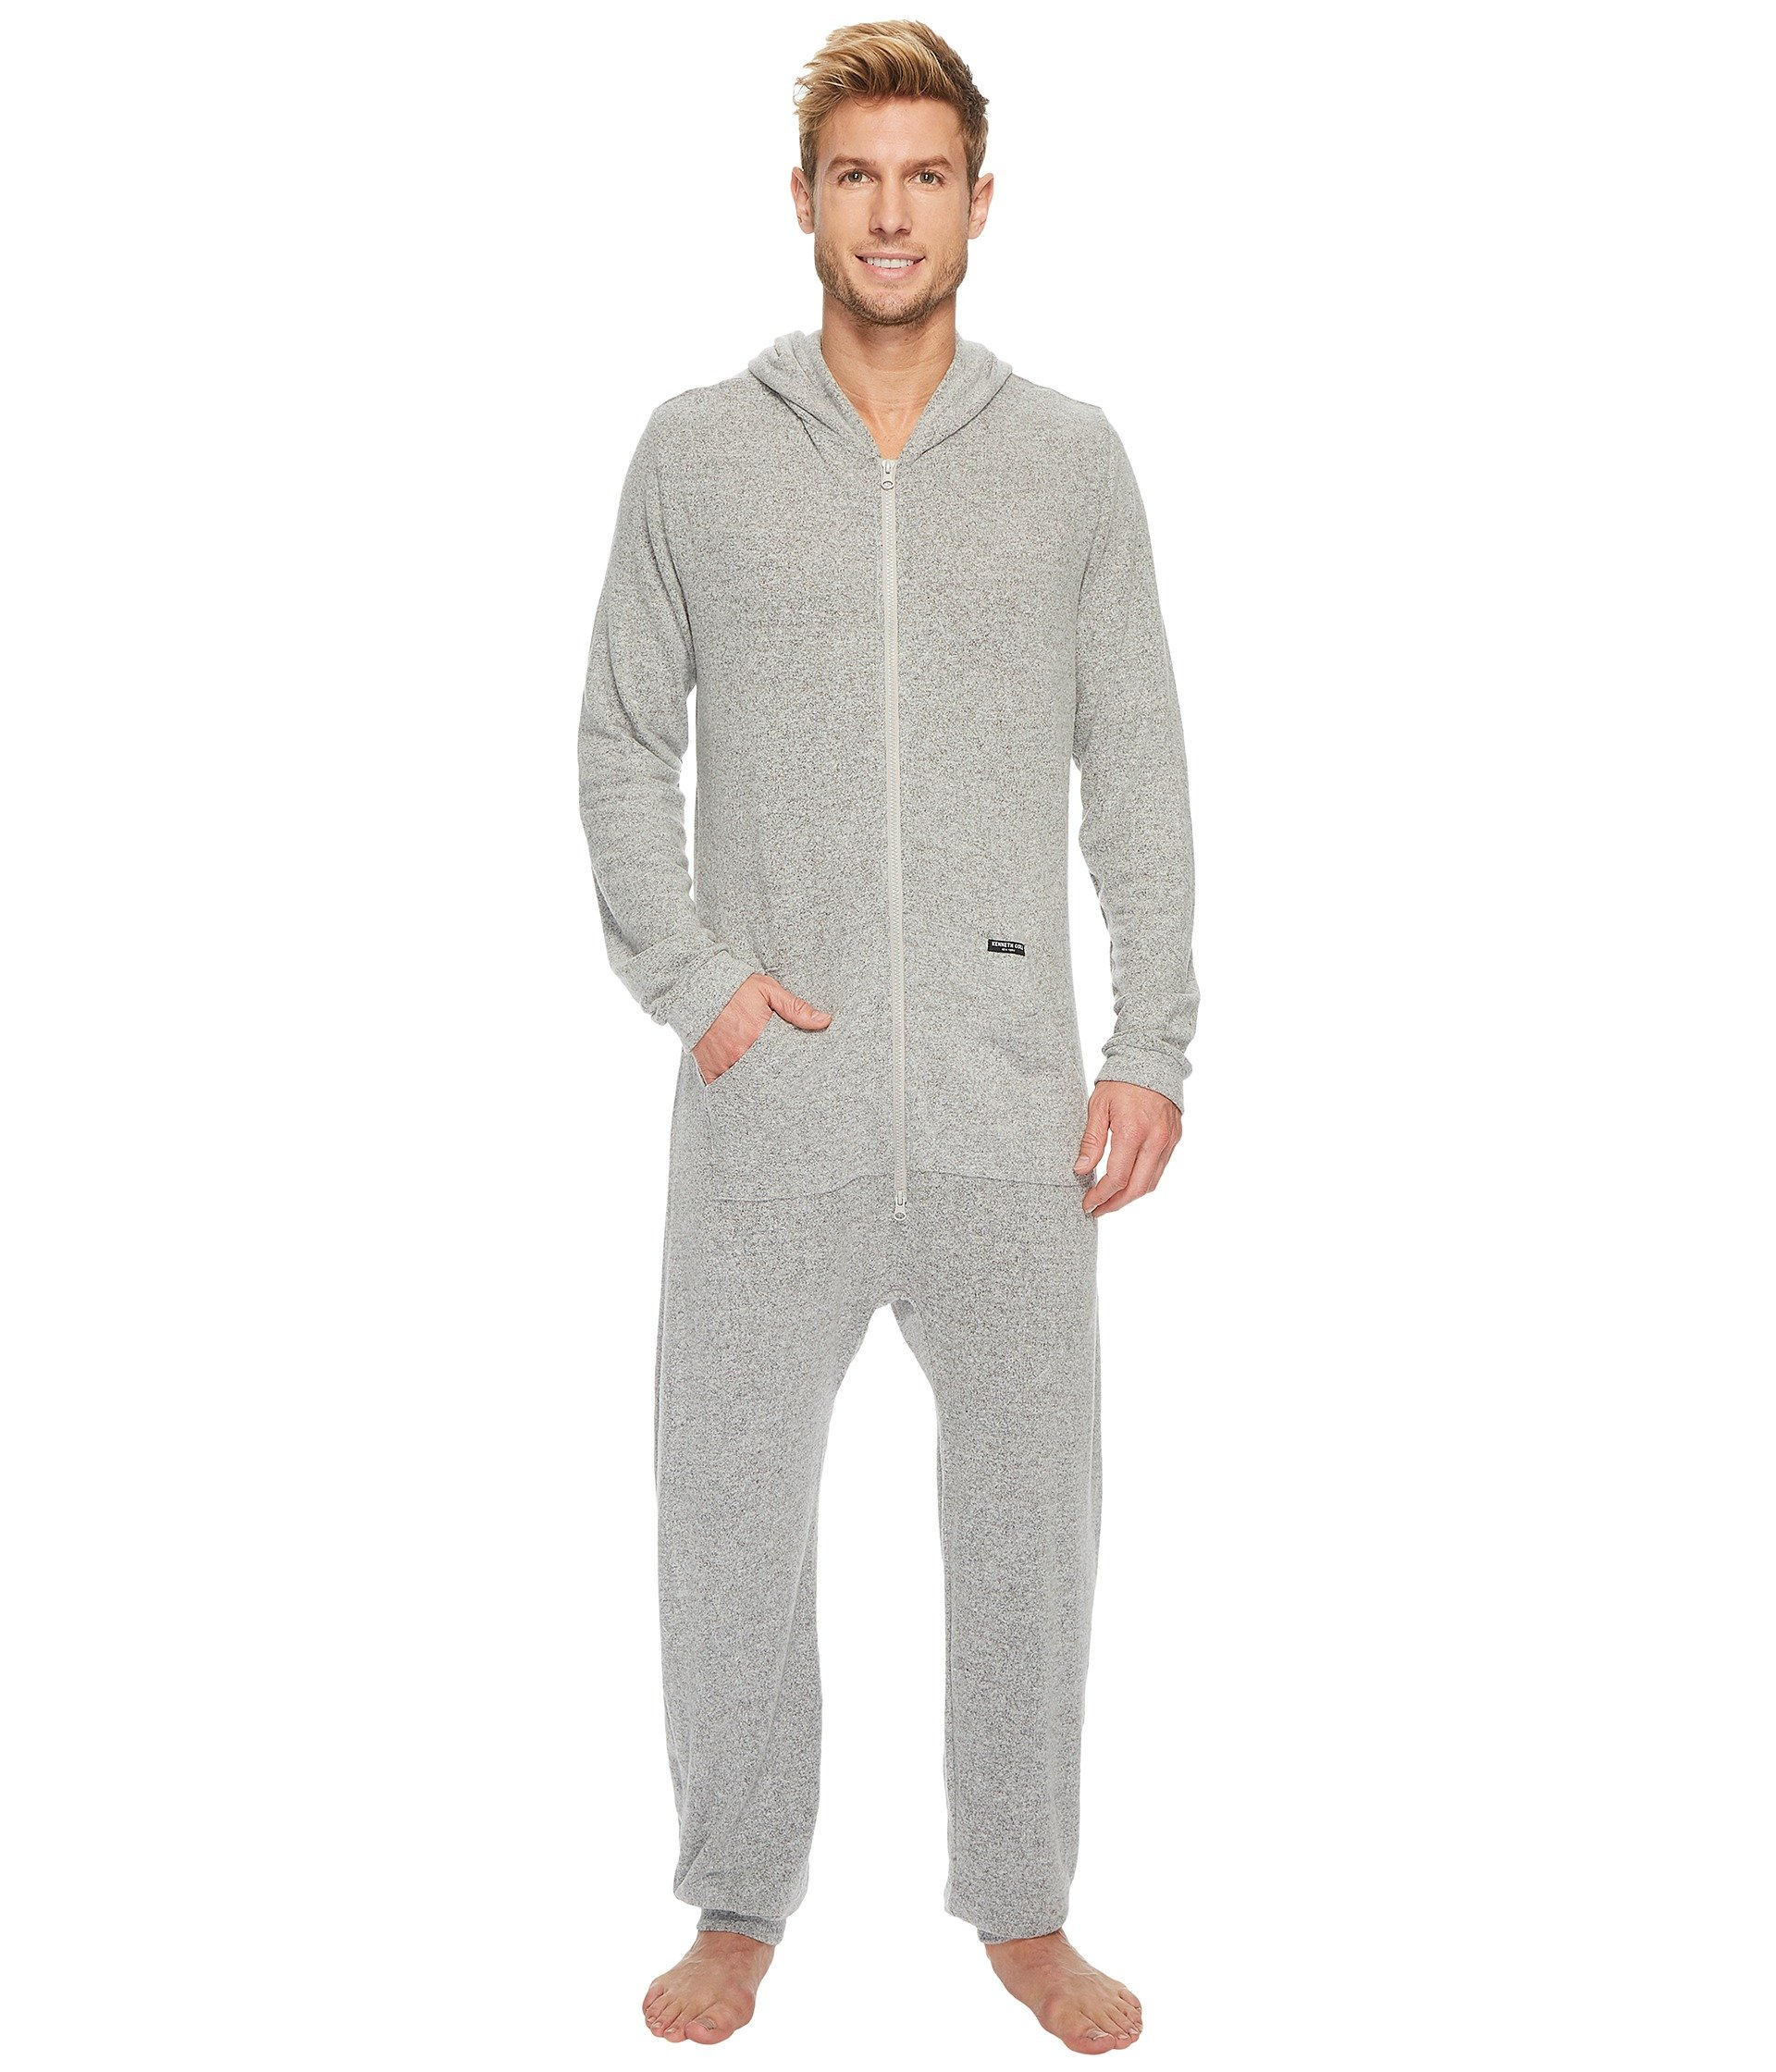 Pijama para Hombre Kenneth Cole Reaction Cozy Sweater One-Piece  + Kenneth Cole Reaction en VeoyCompro.net